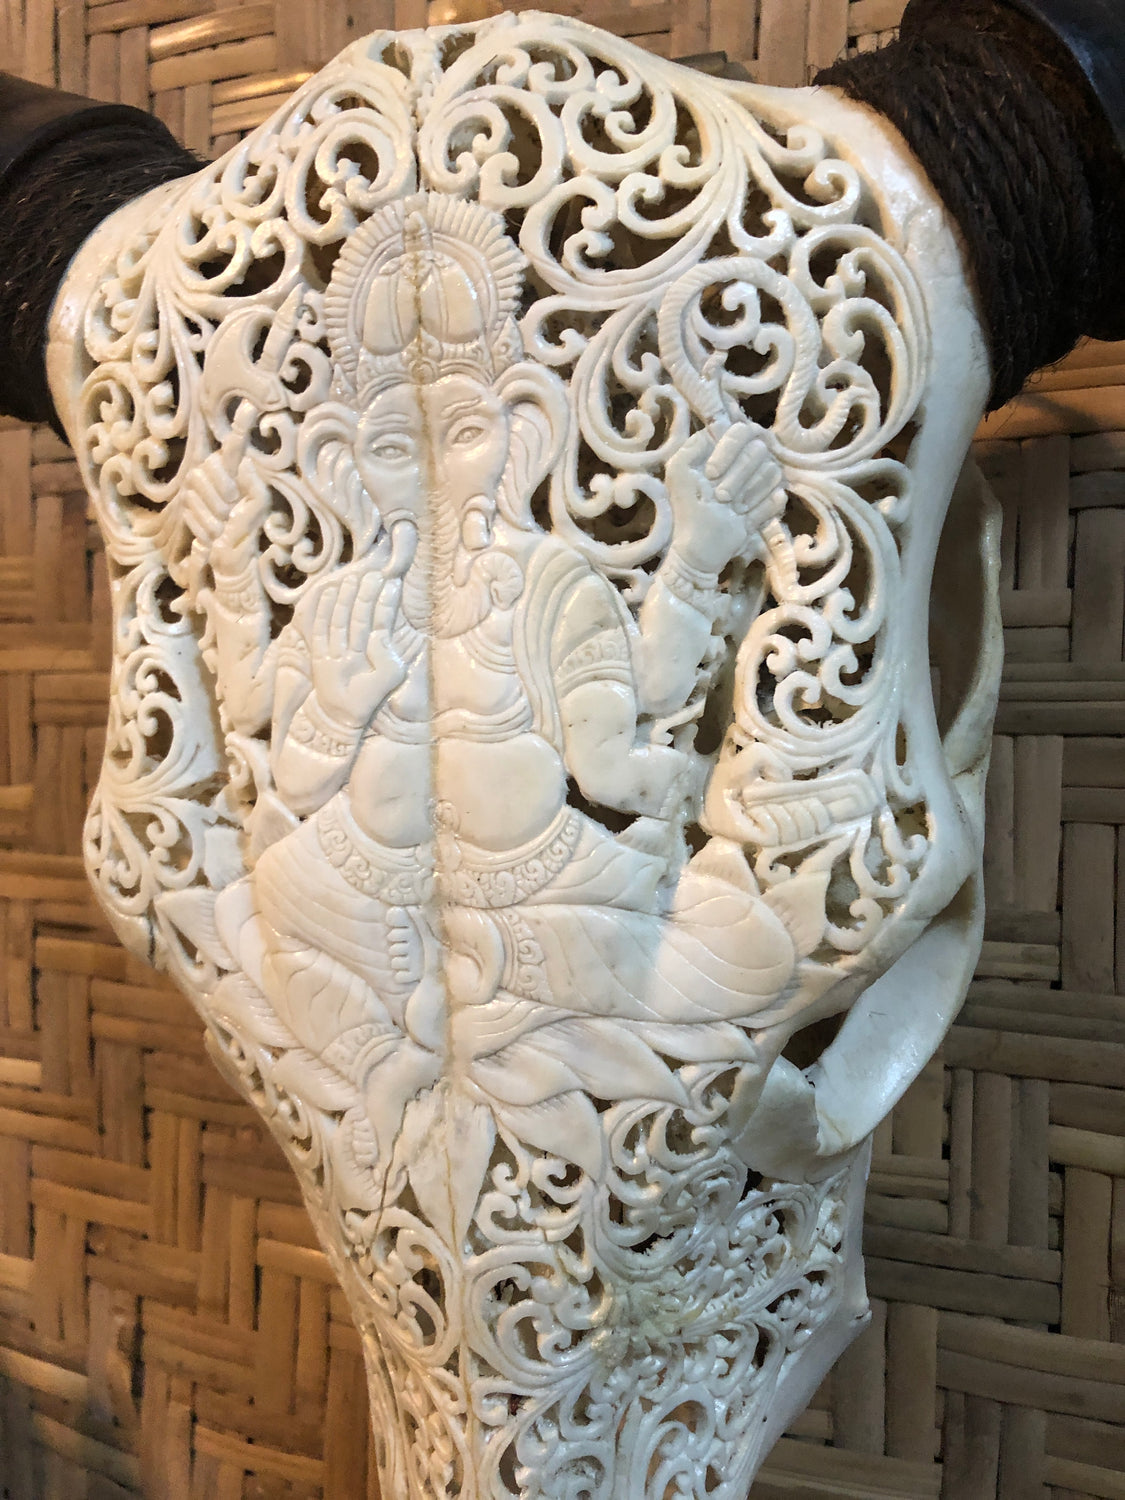 Intricately Carved Cow Skulls with Ganesh